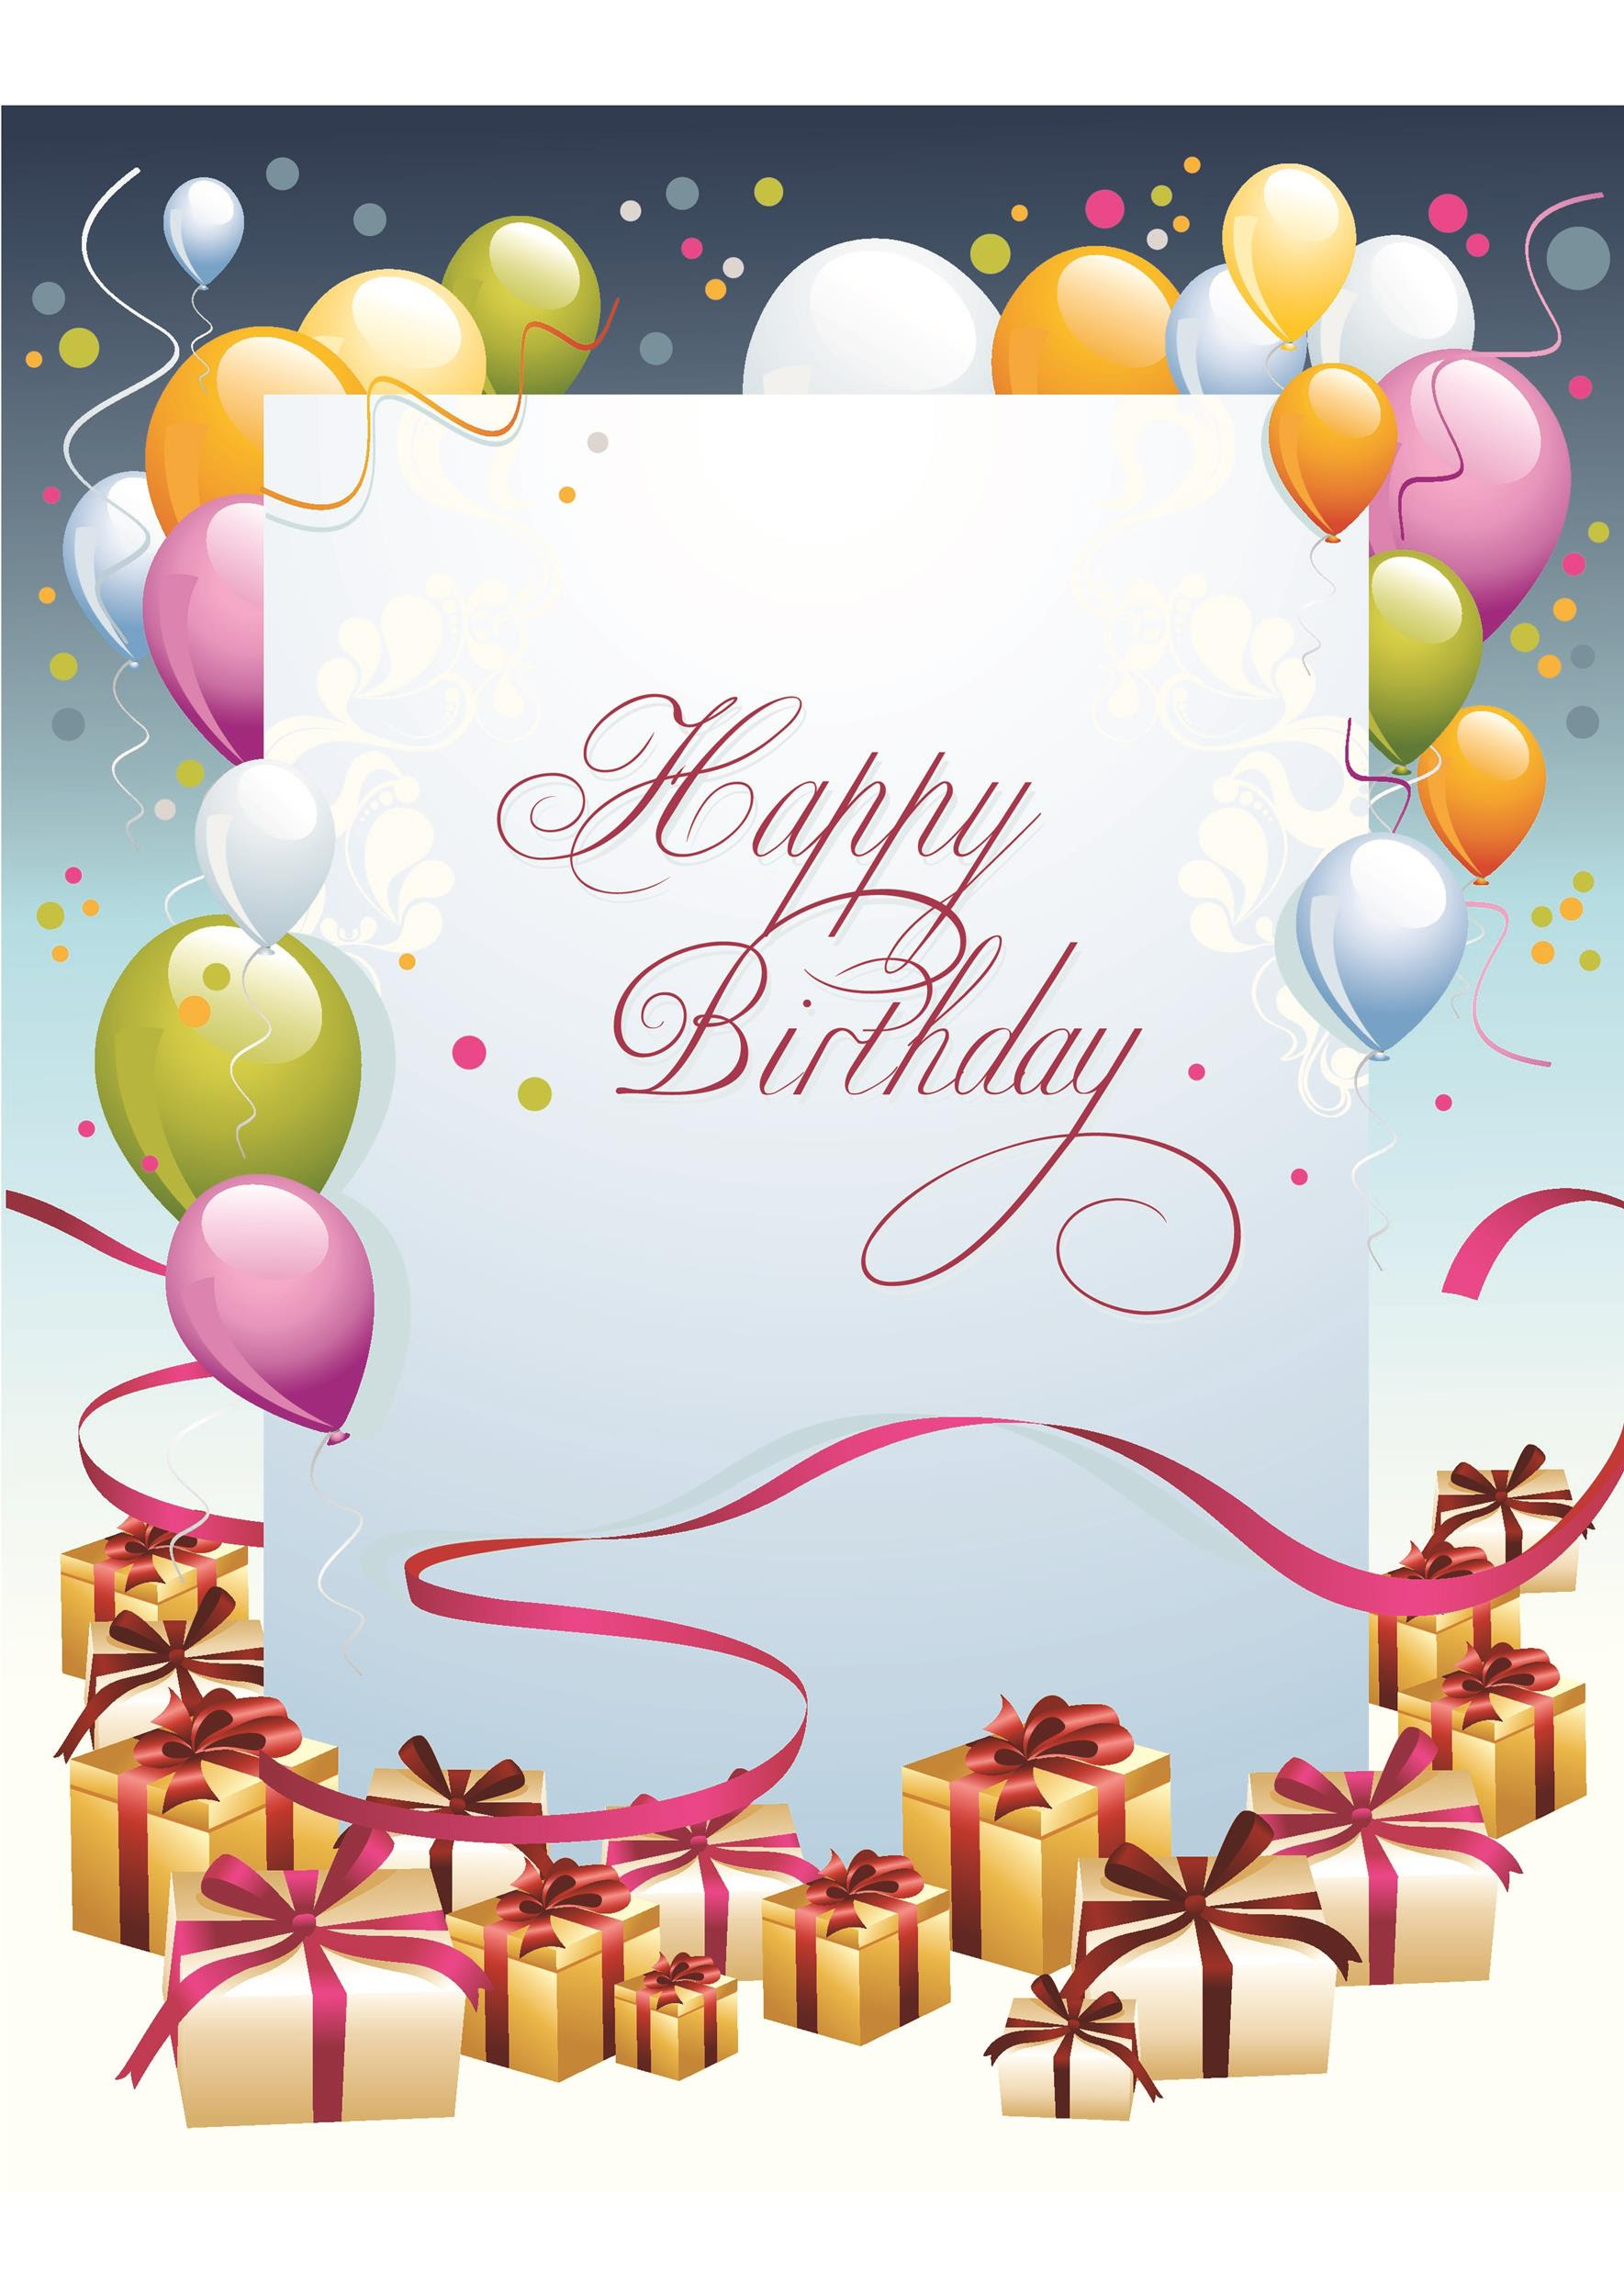 Birthday Cards Free Download Card Design Template